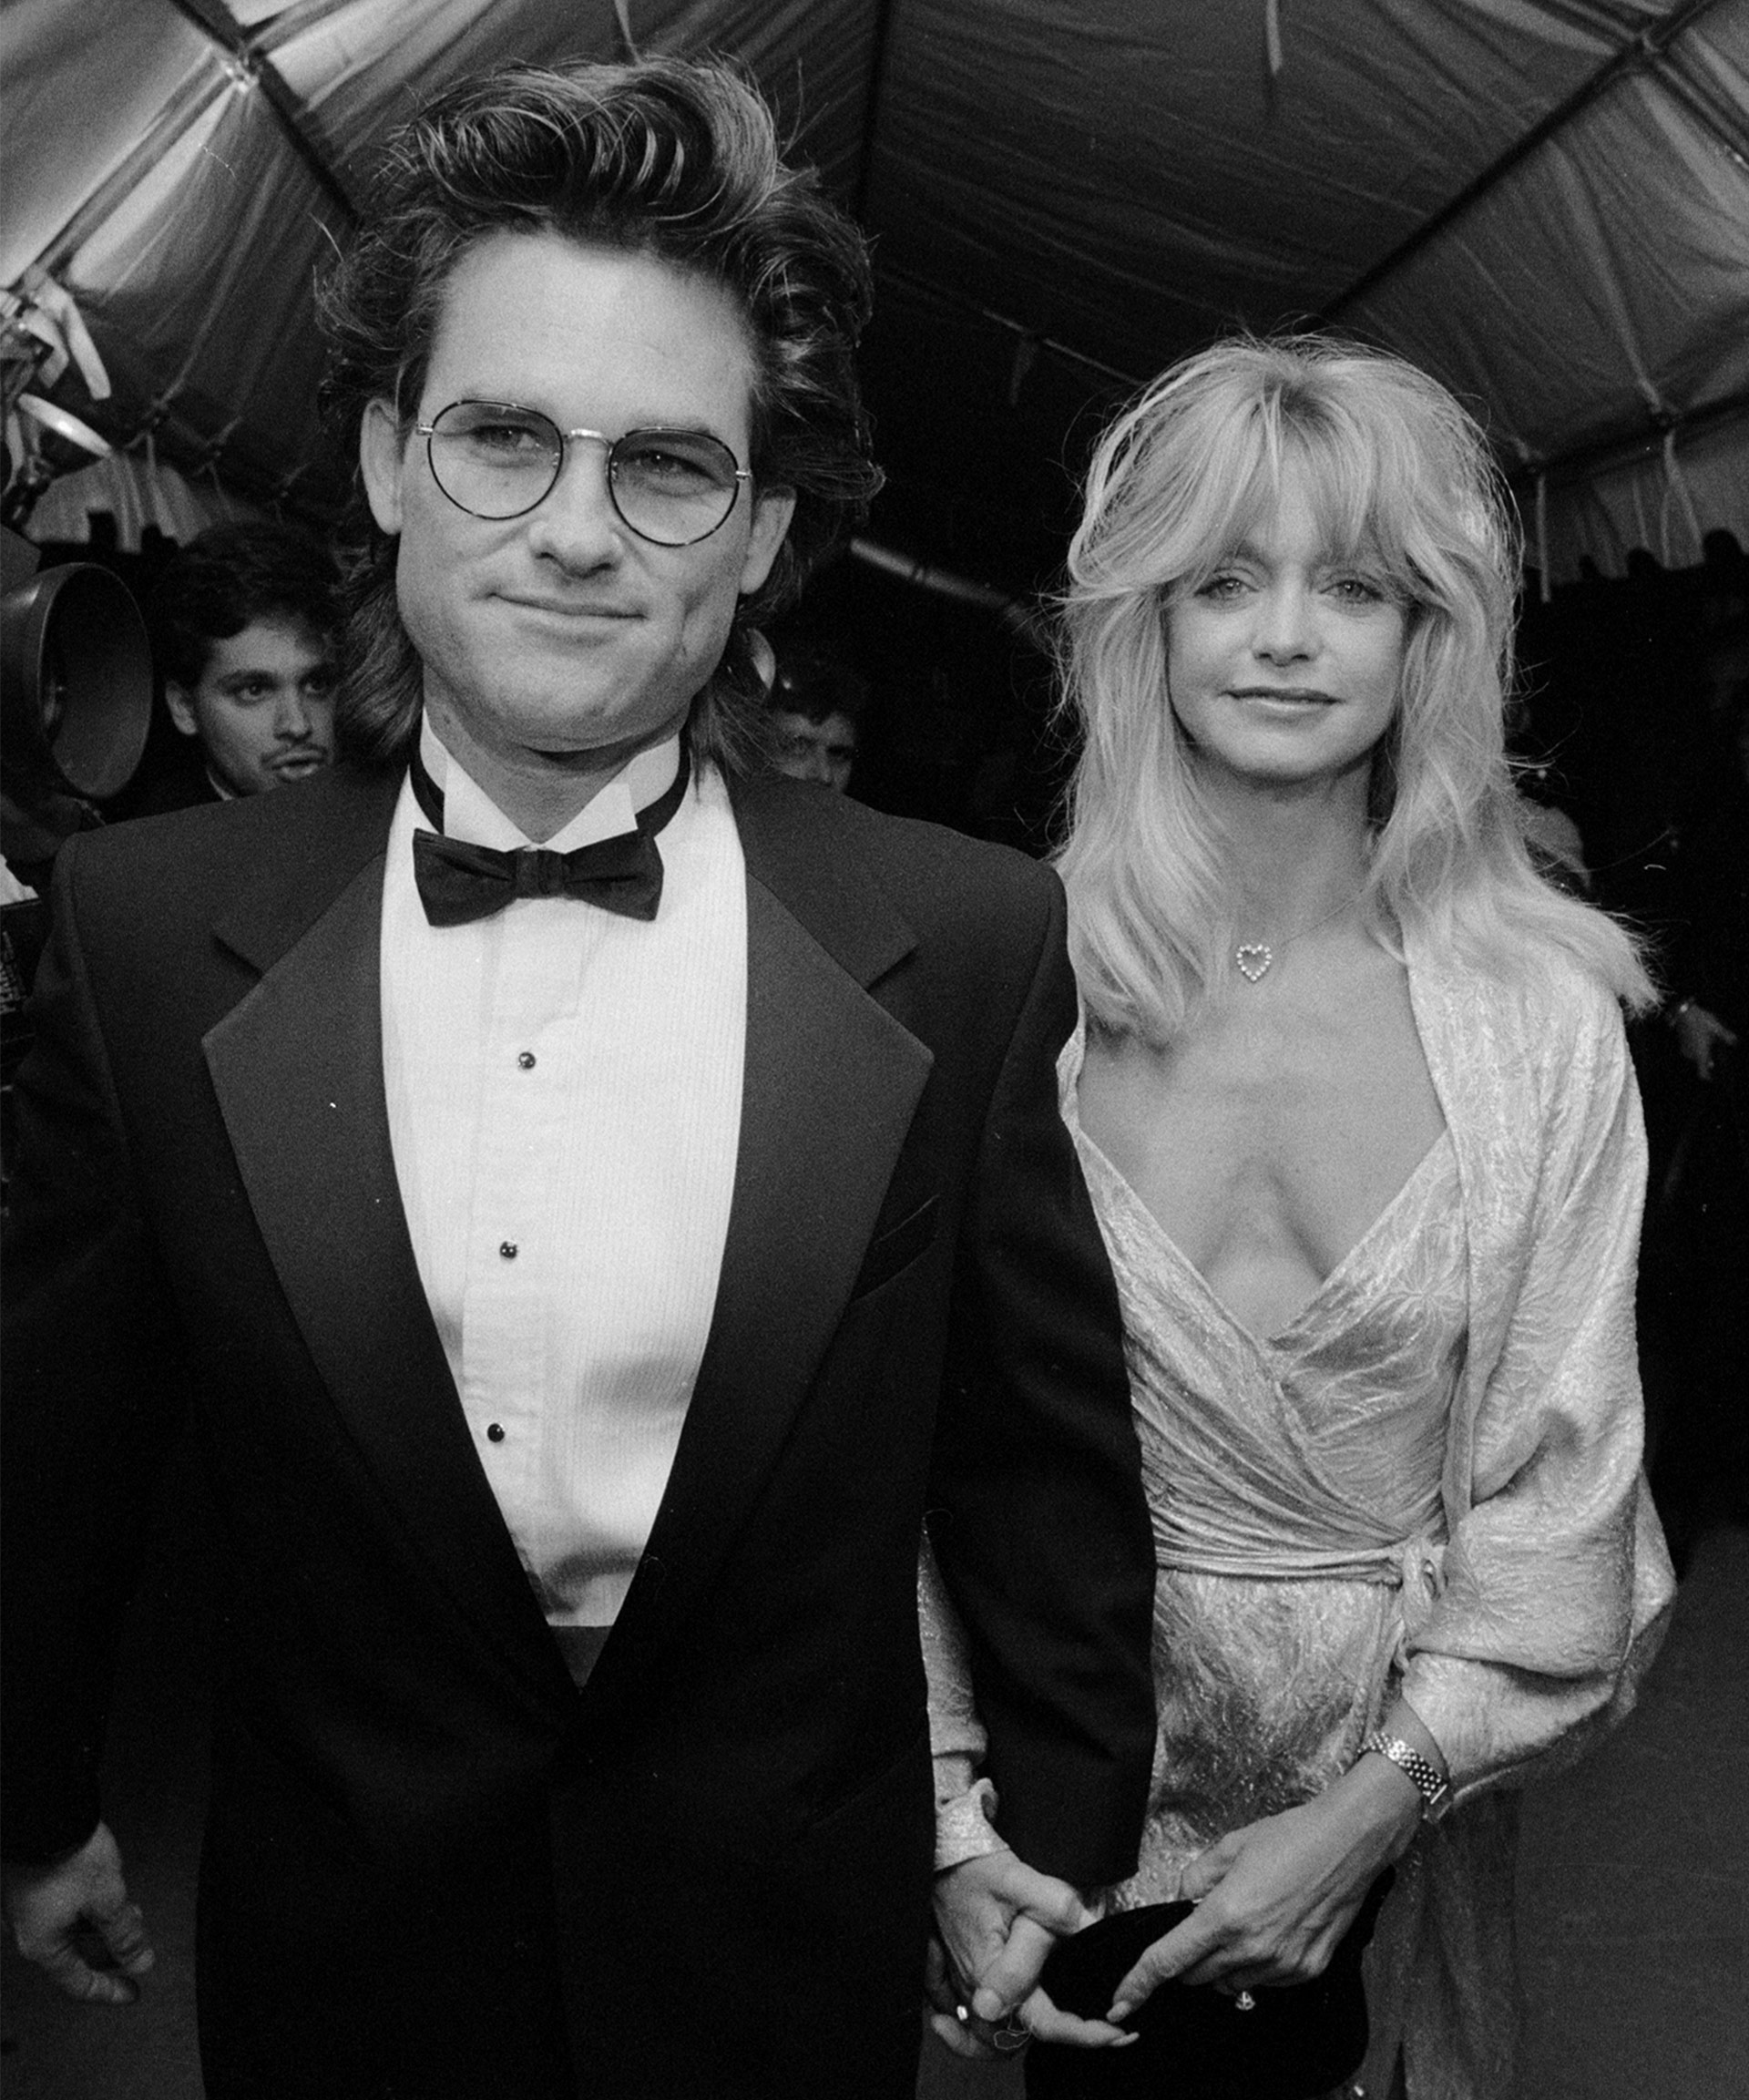 Image: Goldie Hawn and Kurt Russell when young